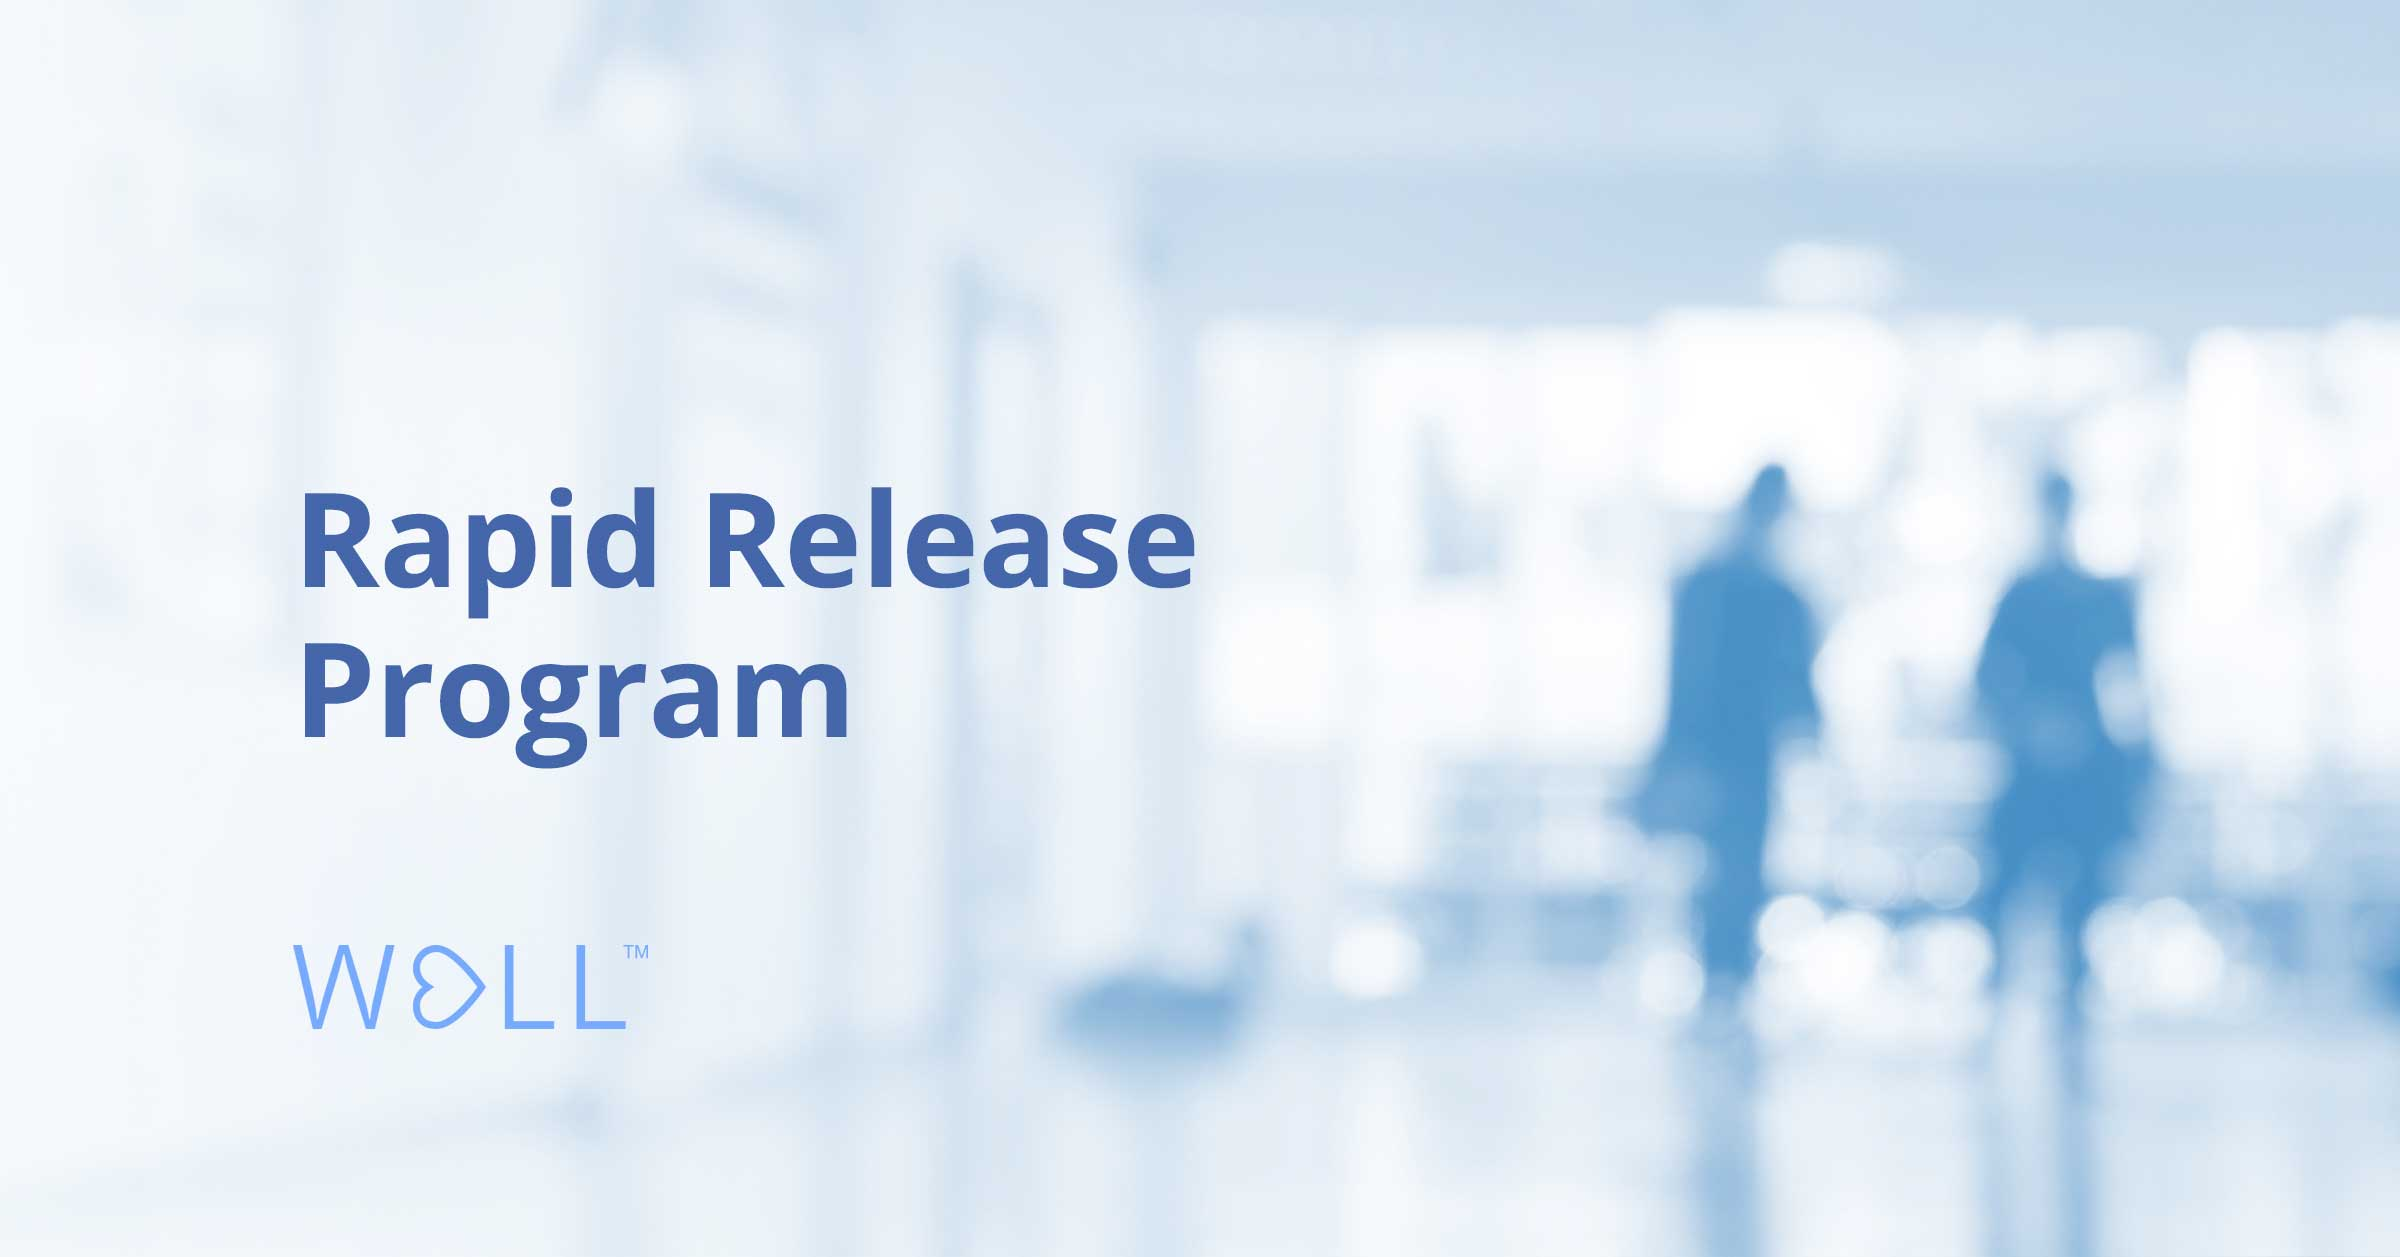 WELL Rapid Release Program supports 48-hour implementations